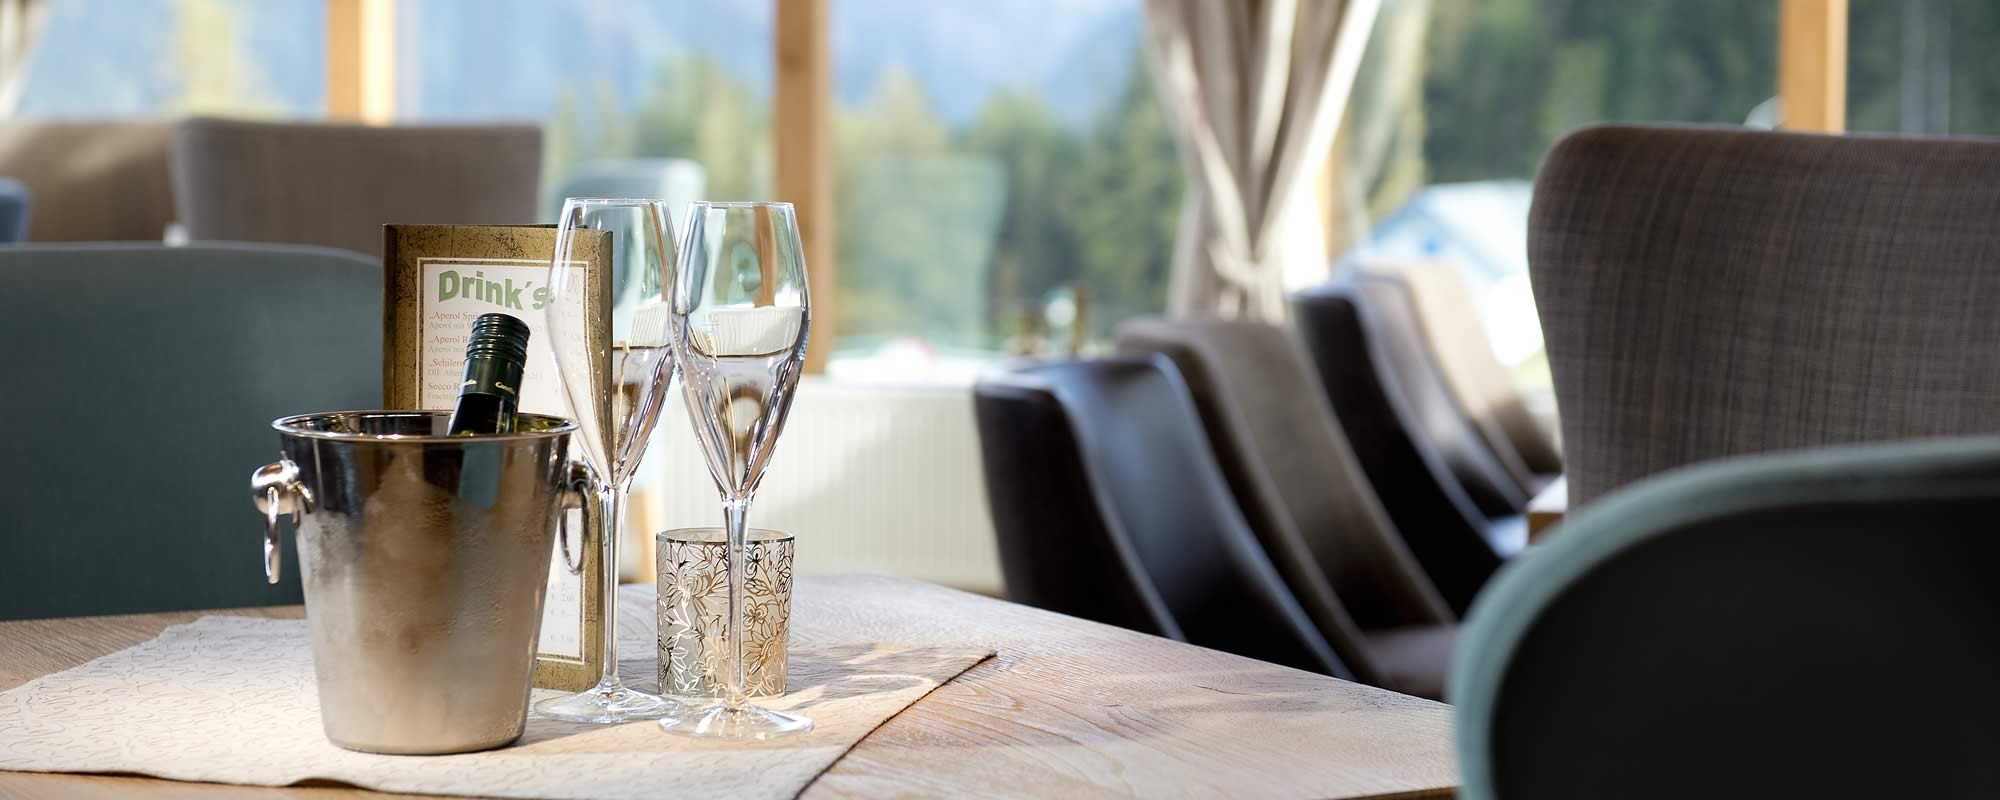 Have a glass of sparkling wine in the cozy bar area of the Hotel Waldfrieden